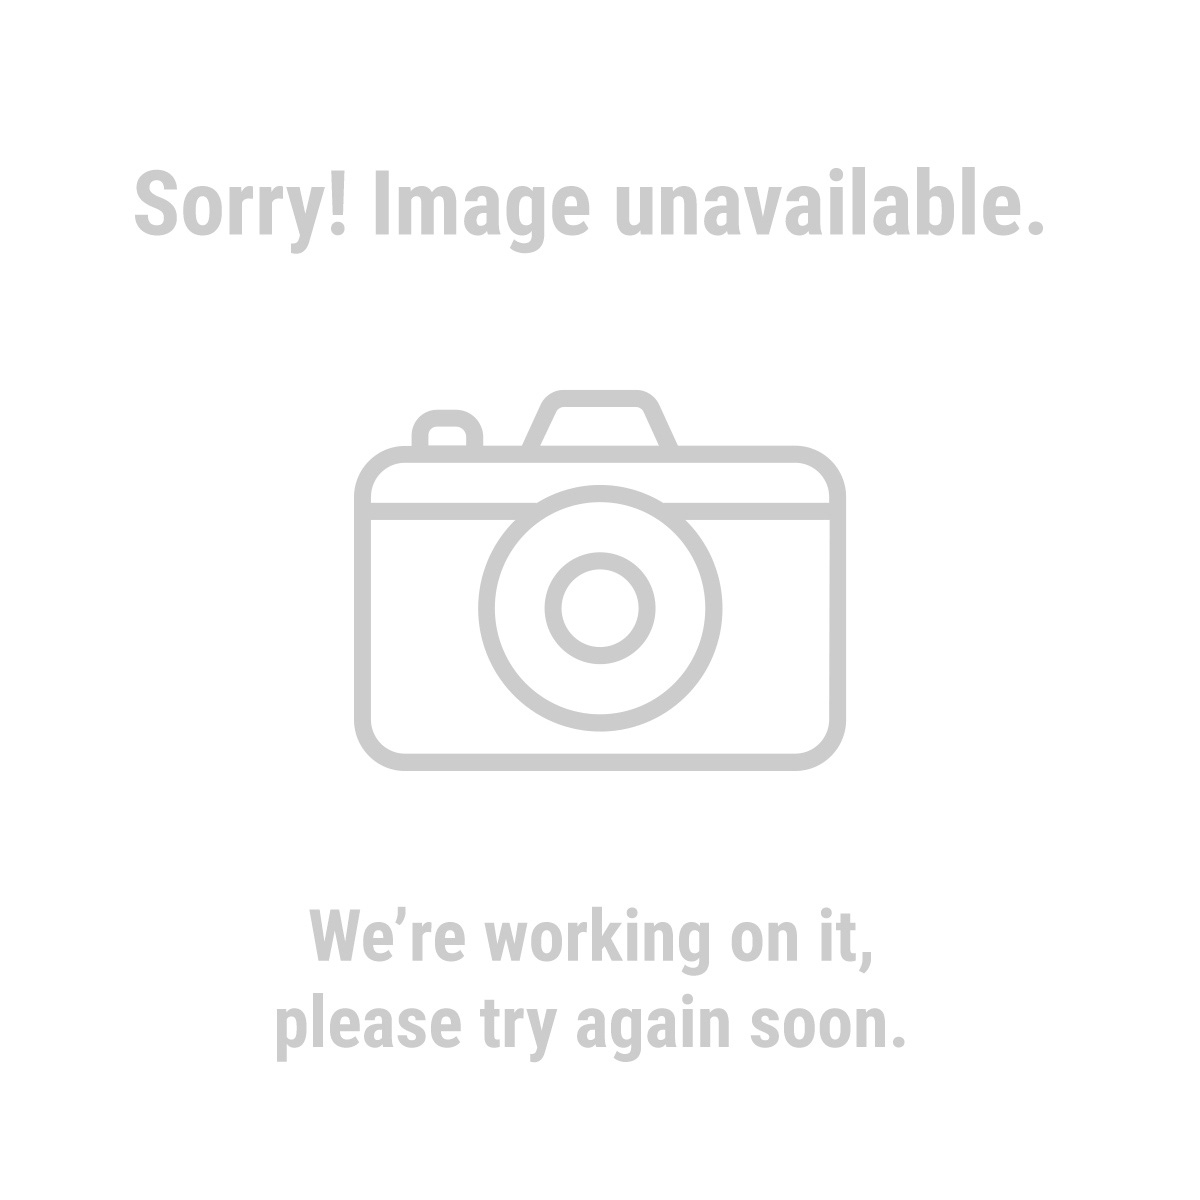 Pittsburgh® 5494 3/4 in. Jumbo Heavy Duty Metric Socket Set 20 Pc